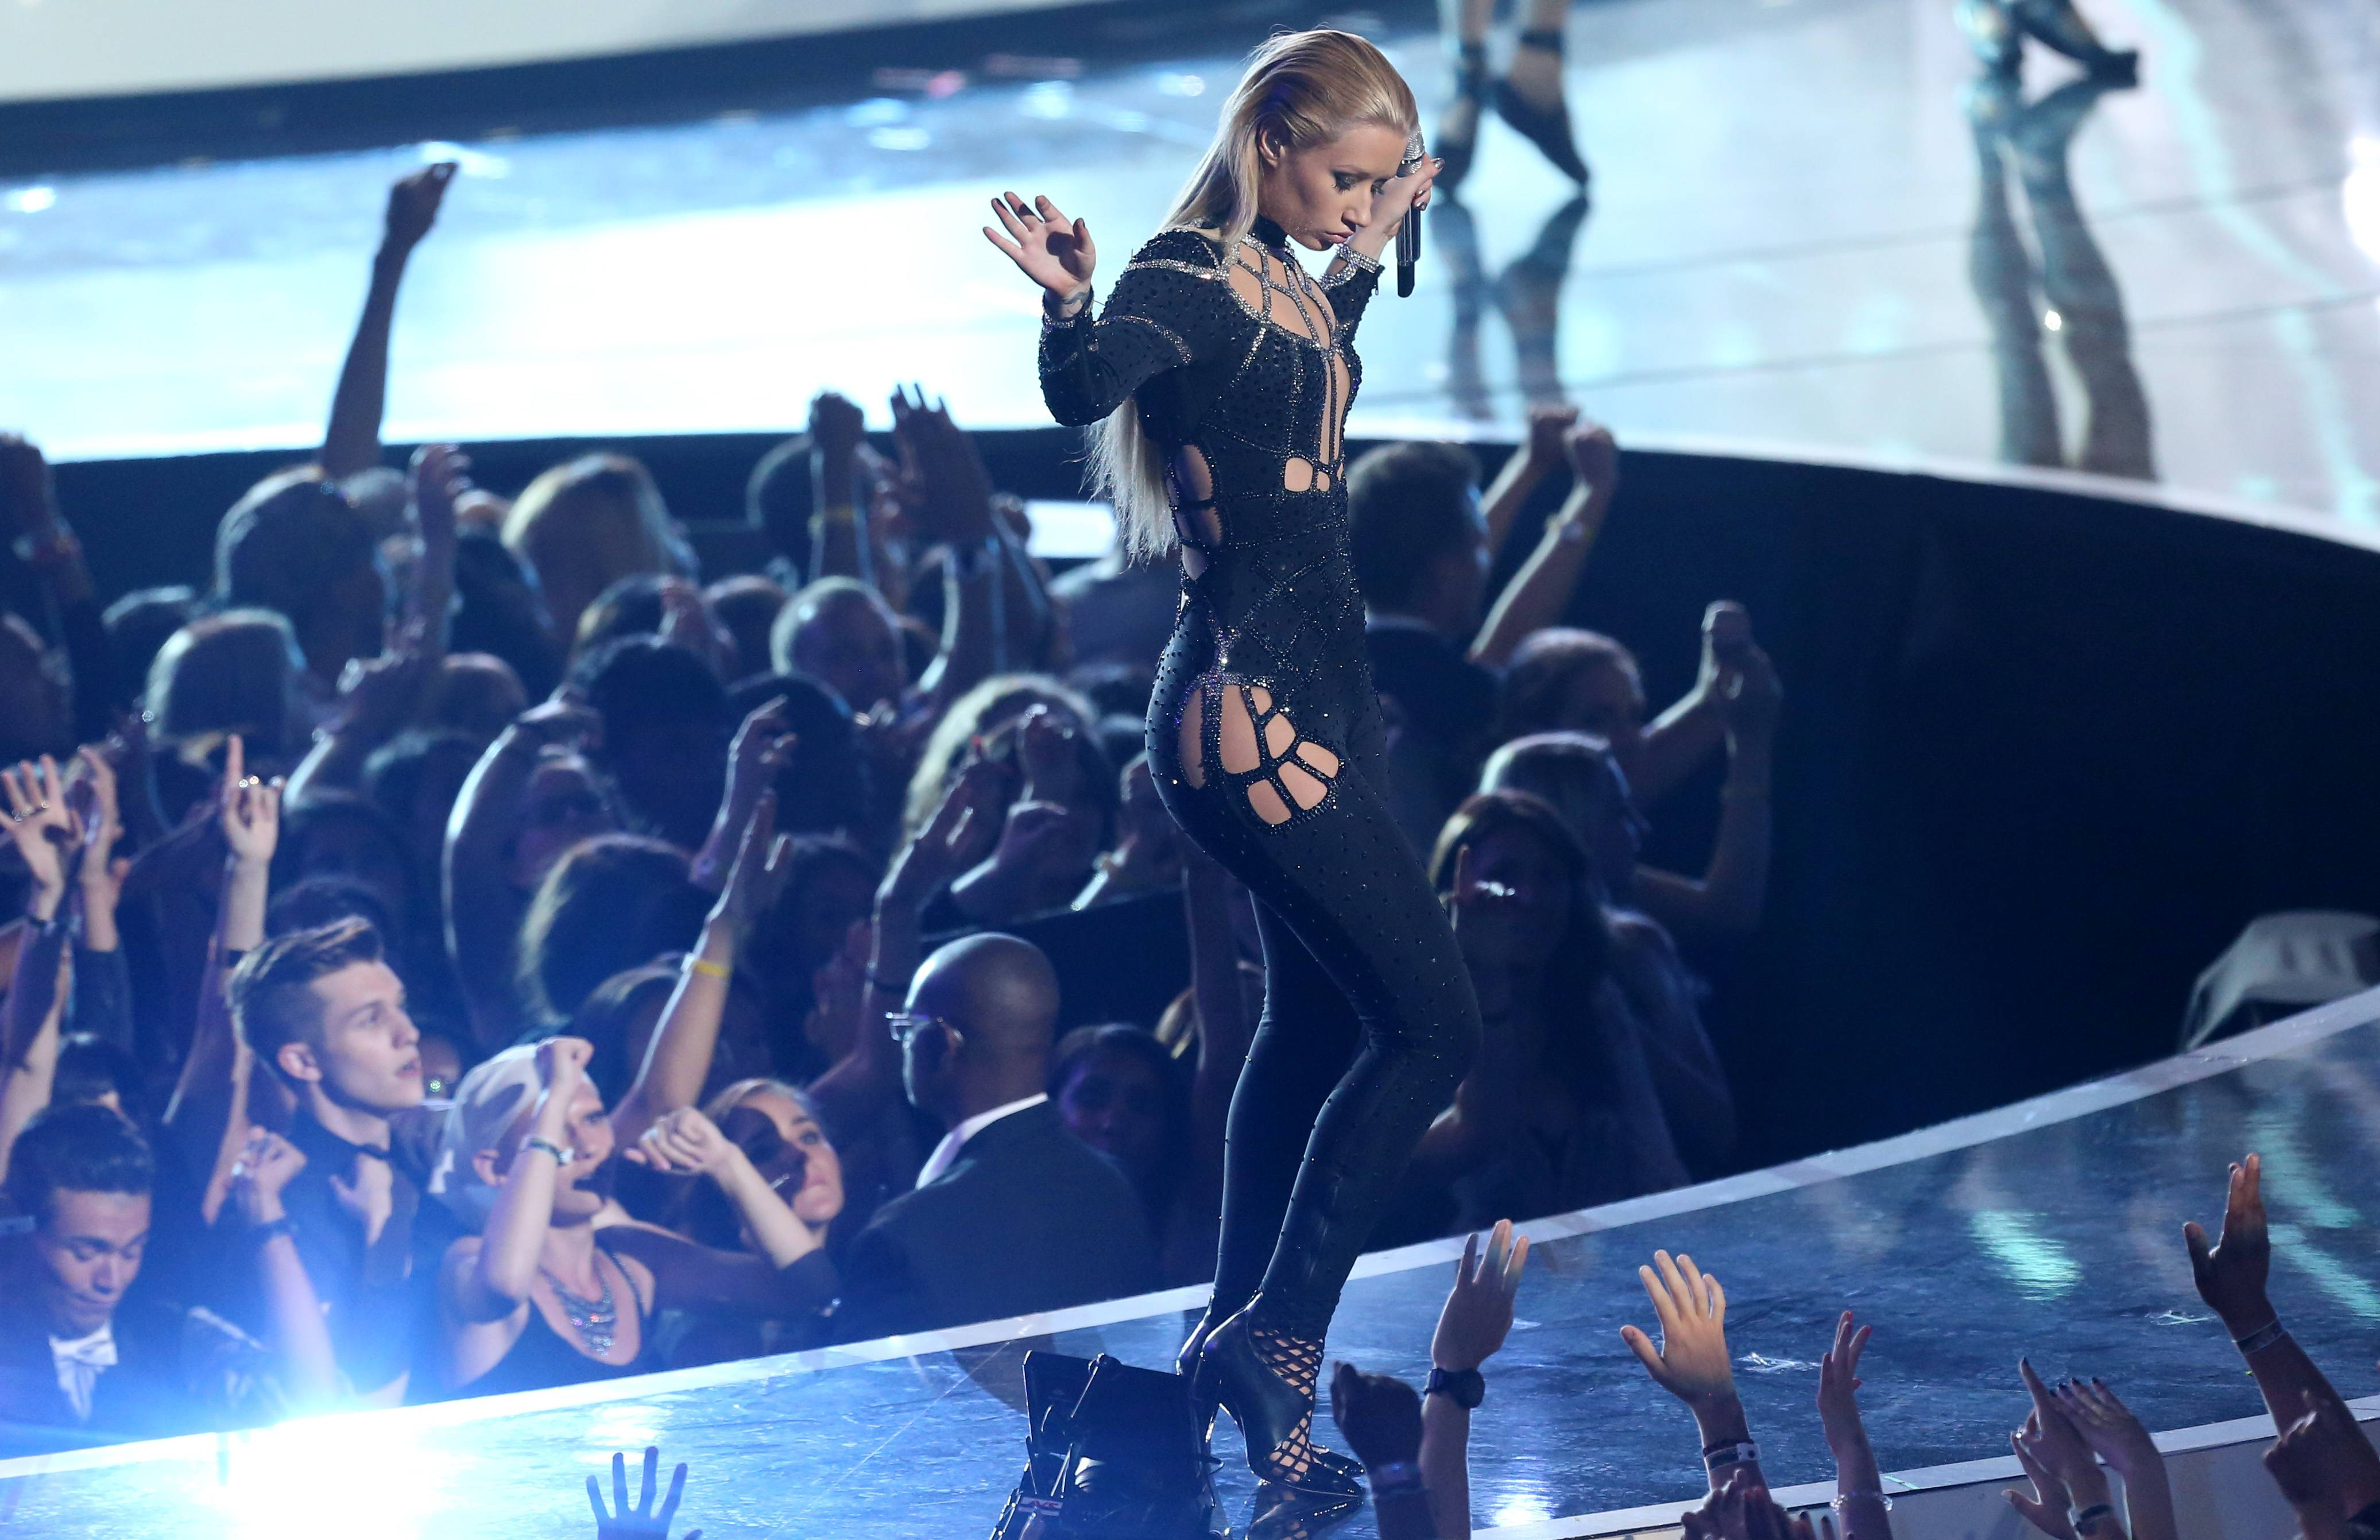 Iggy Azalea performs at the MTV Video Music Awards.